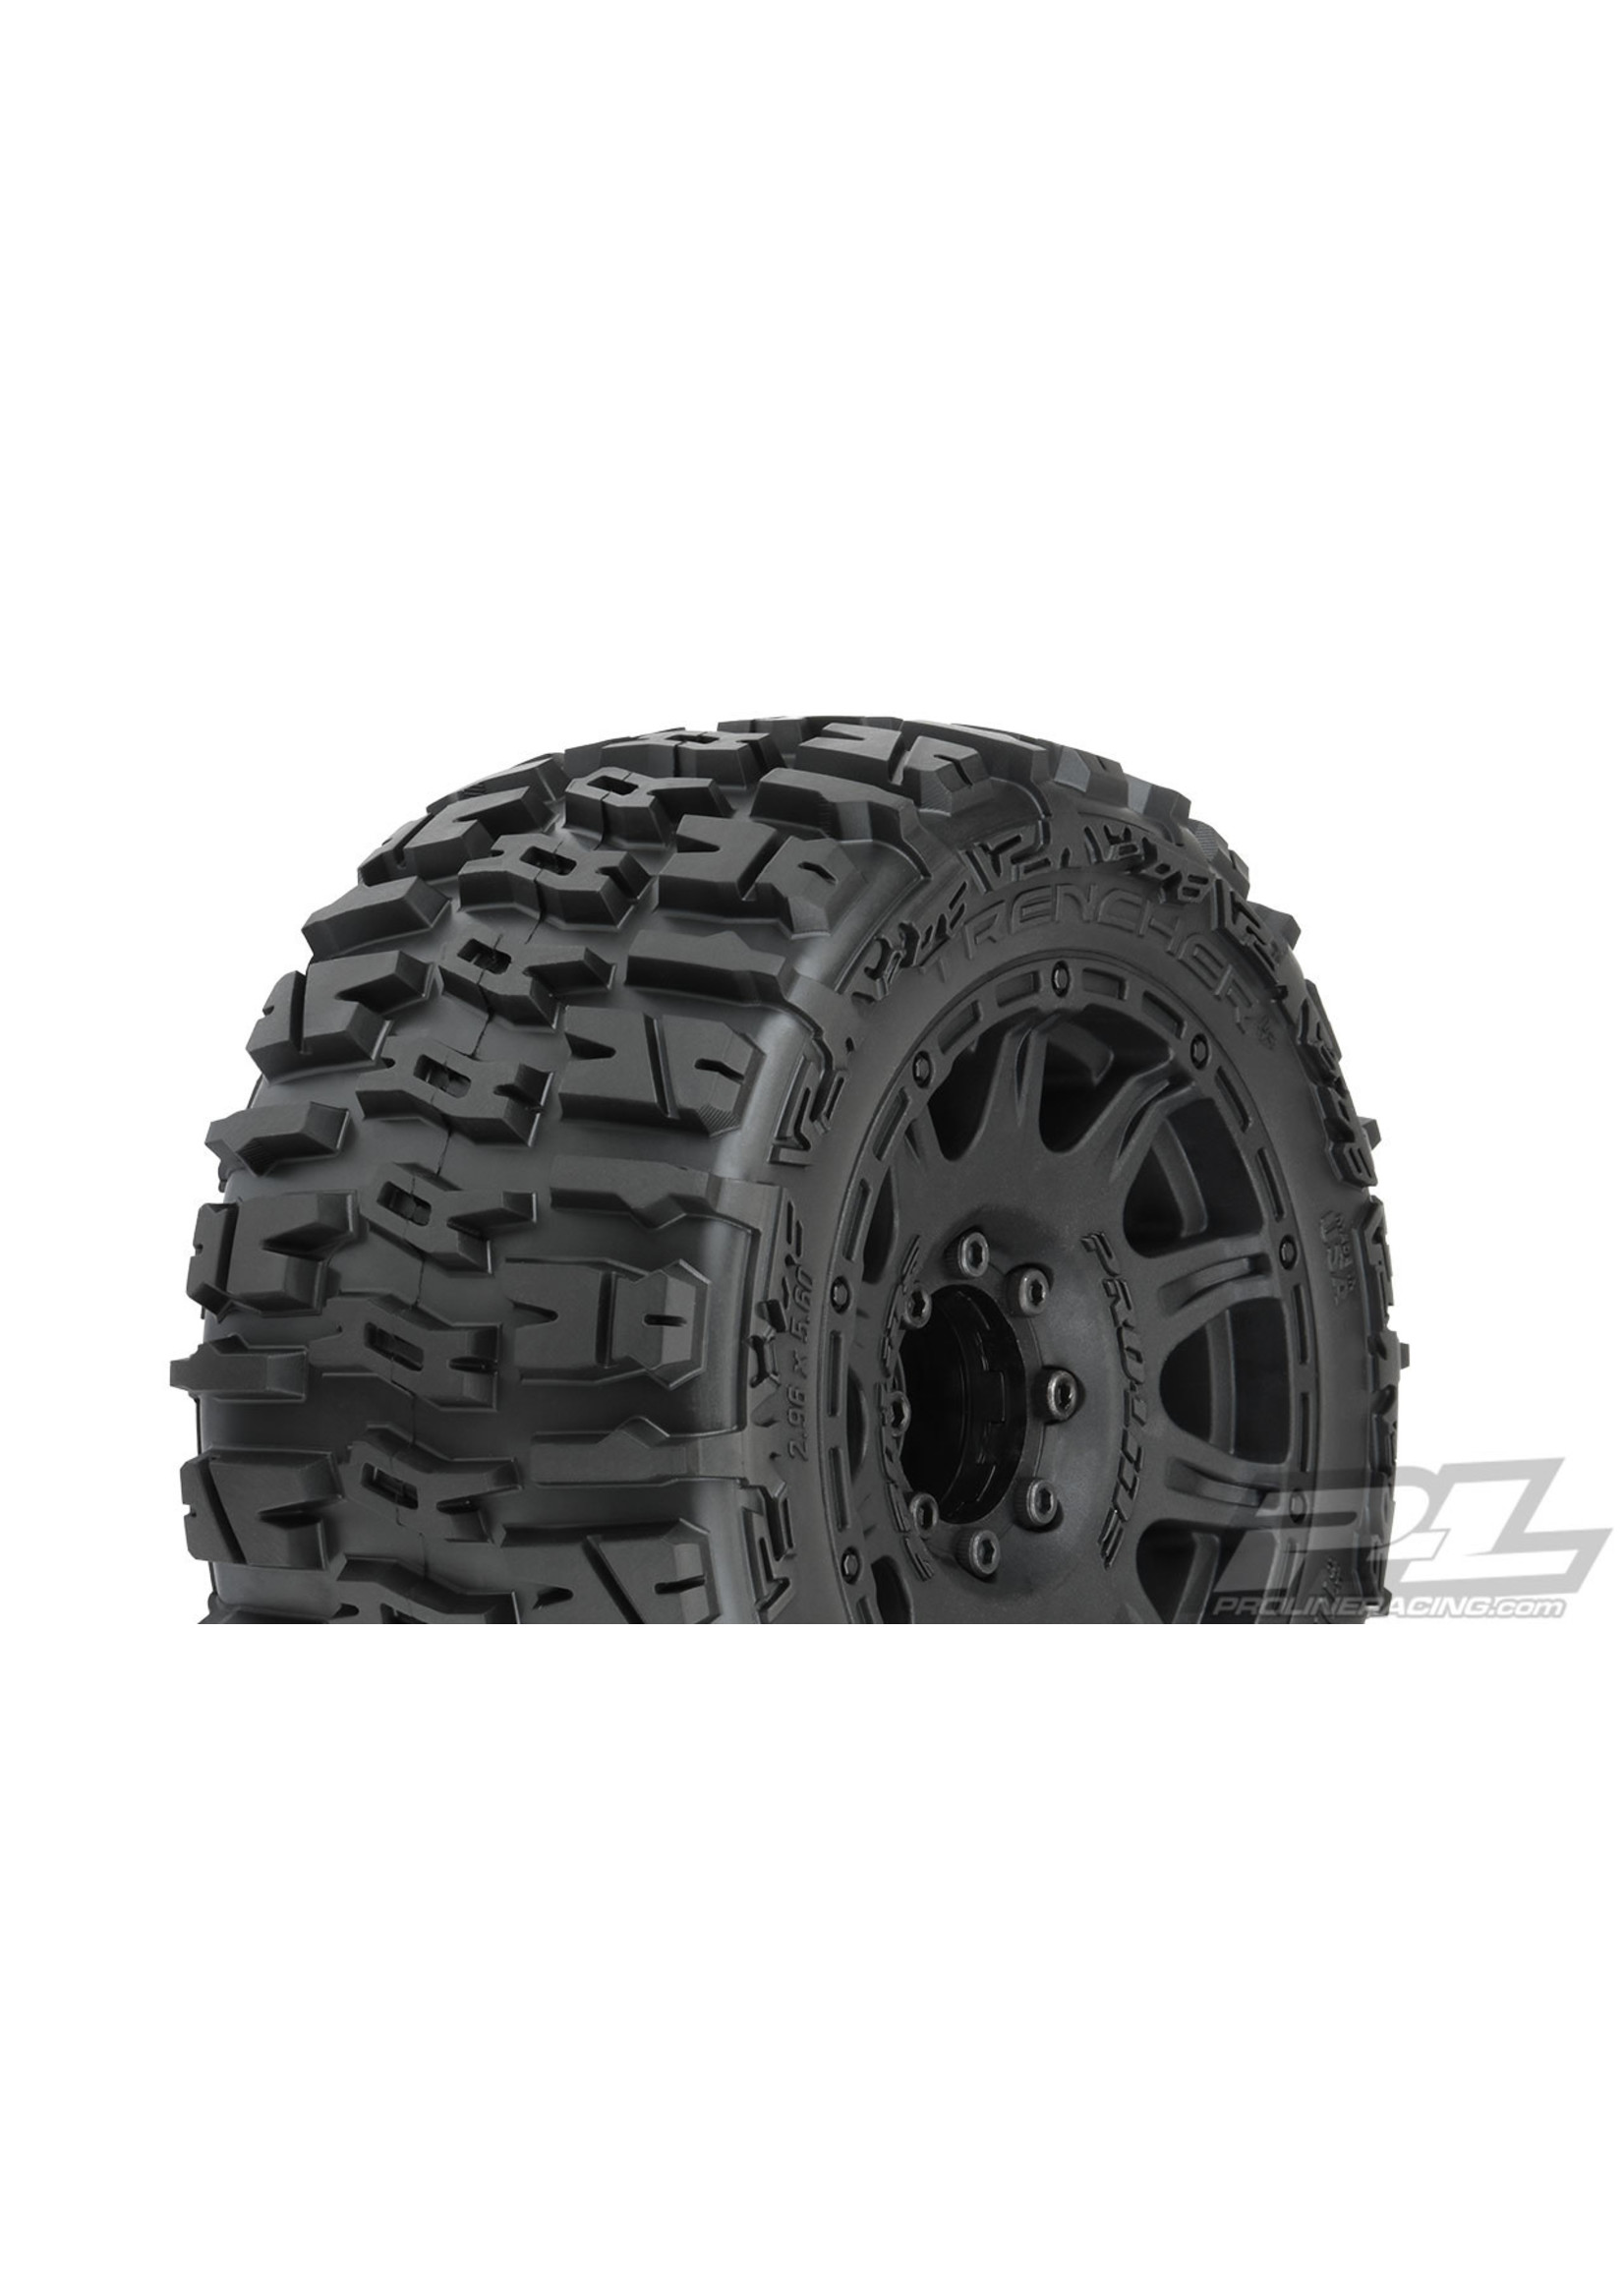 Pro-Line Racing PRO10175-10 Pro-Line Trencher LP 3.8'' Pre-Mounted Truck Tires (2) (Black) (M2) w/Raid 8x32 Removable Hex Wheels